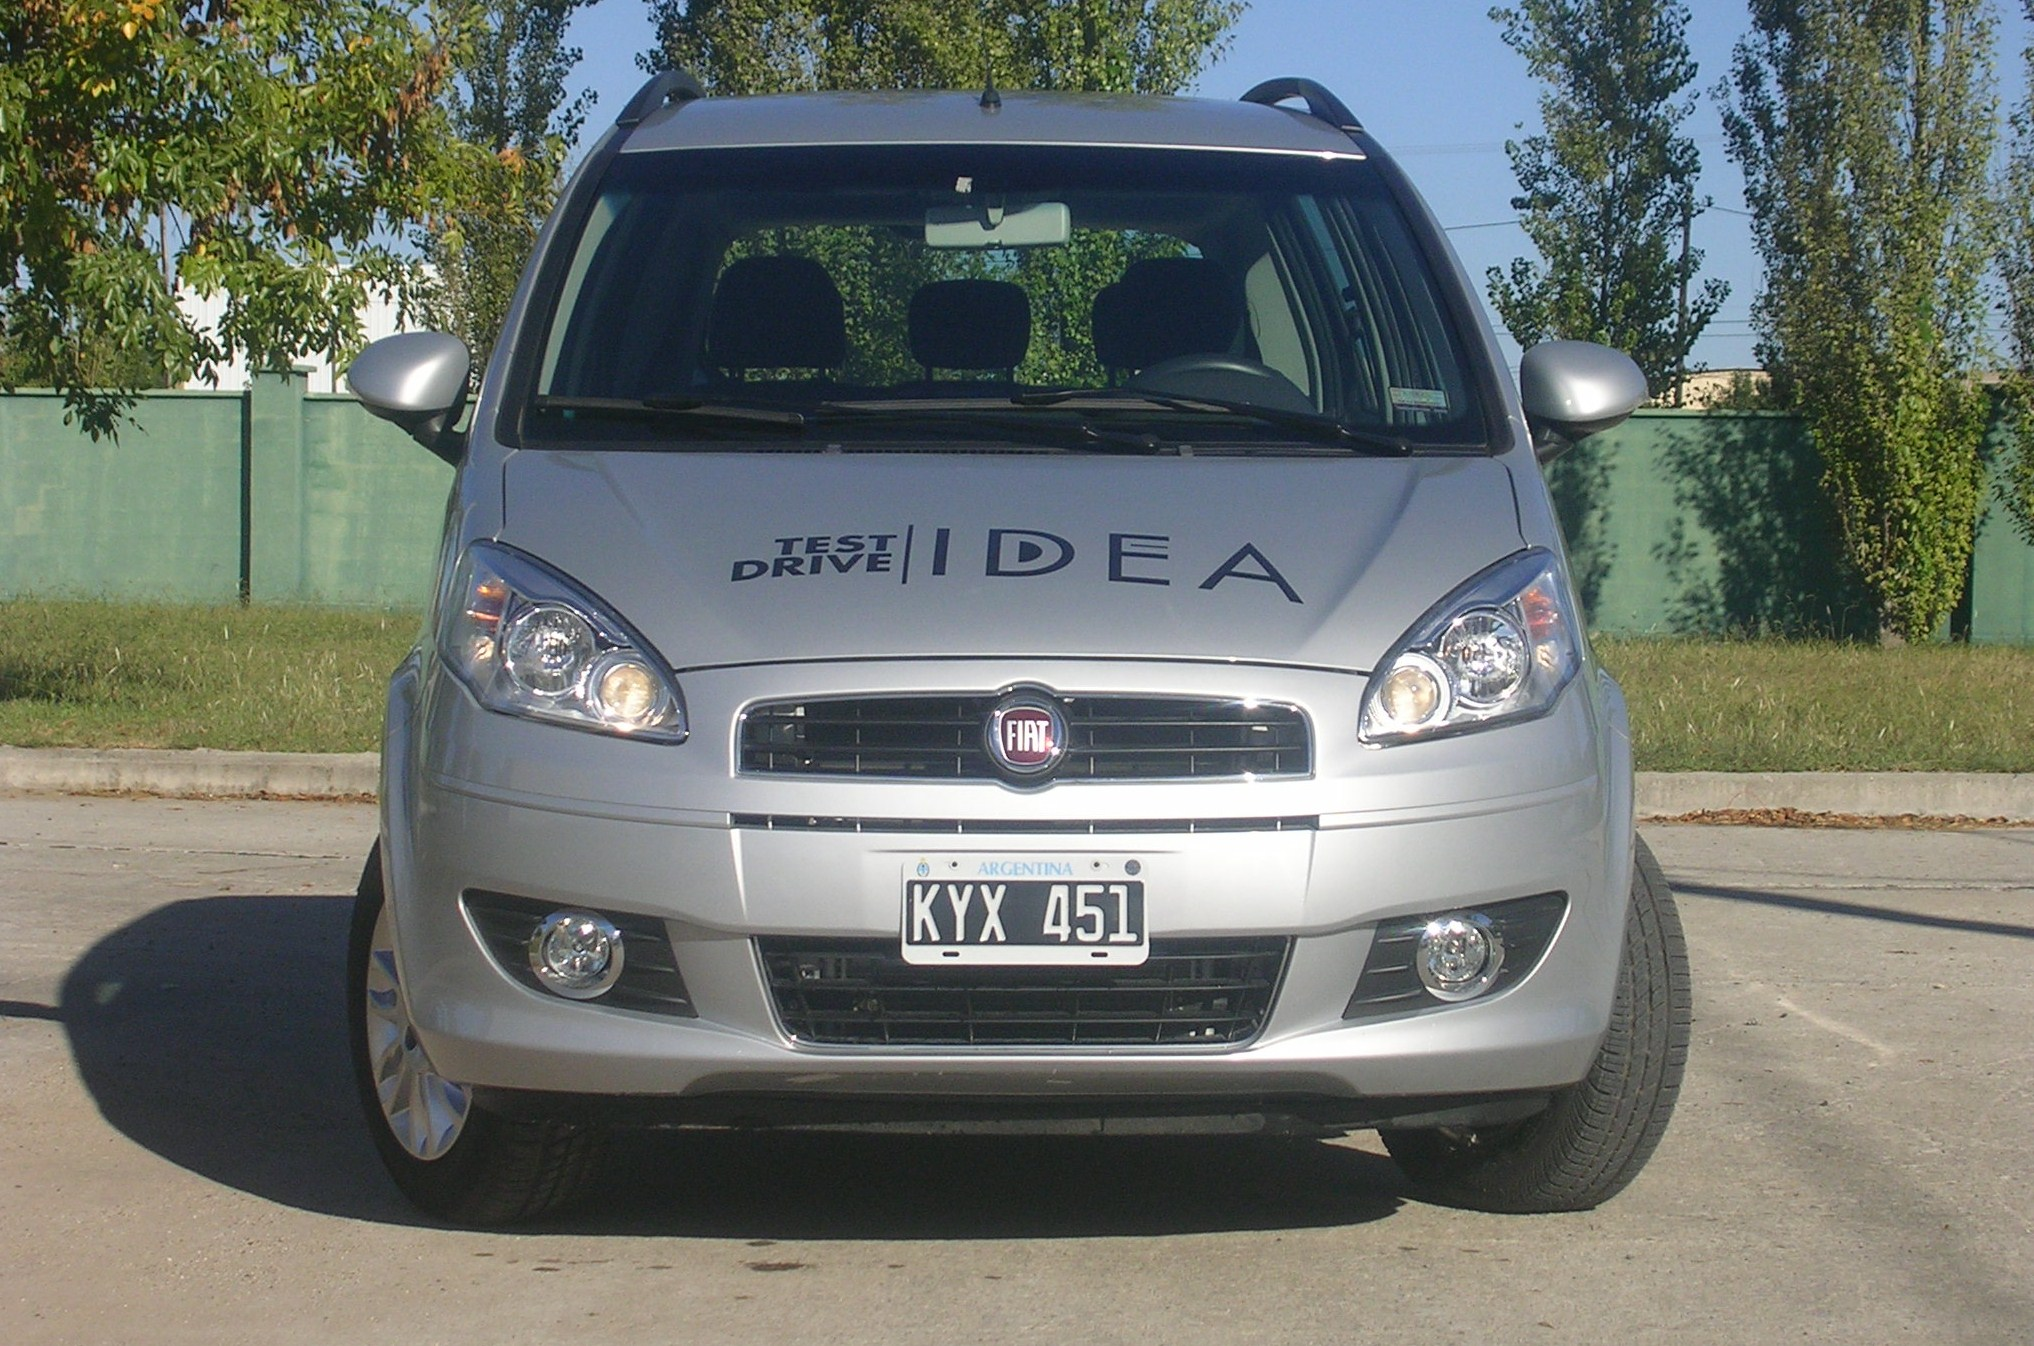 Probamos el fiat idea 1 4 attractive opci n racional for Precio de fiat idea adventure 2016